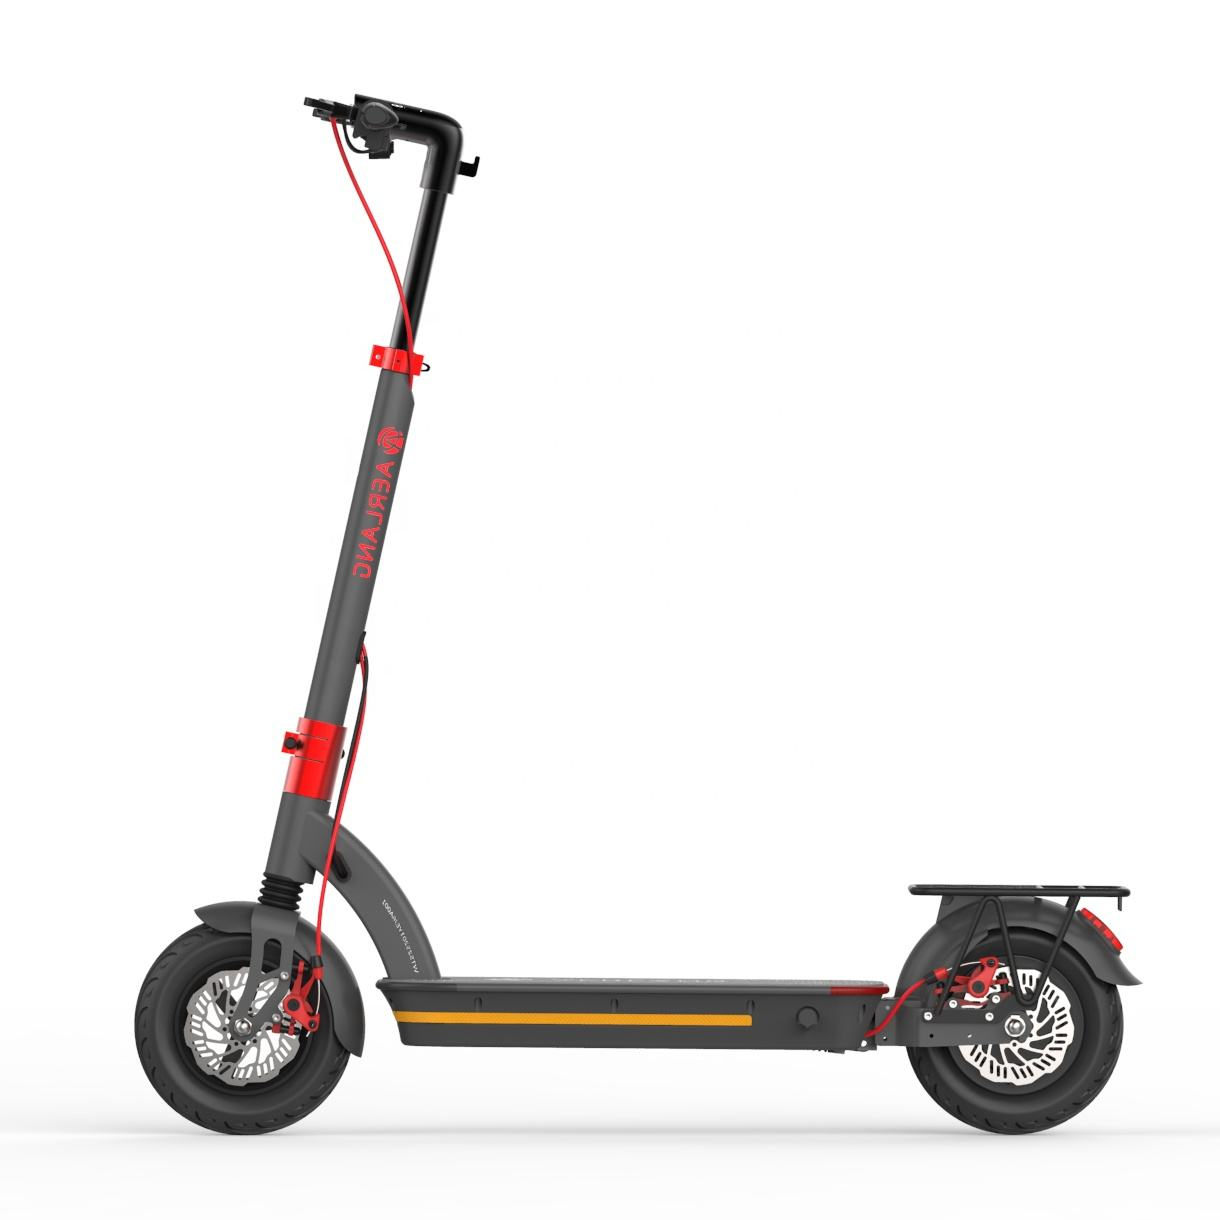 Aerlang H6-A 10 inch foldable electric scooter for adults